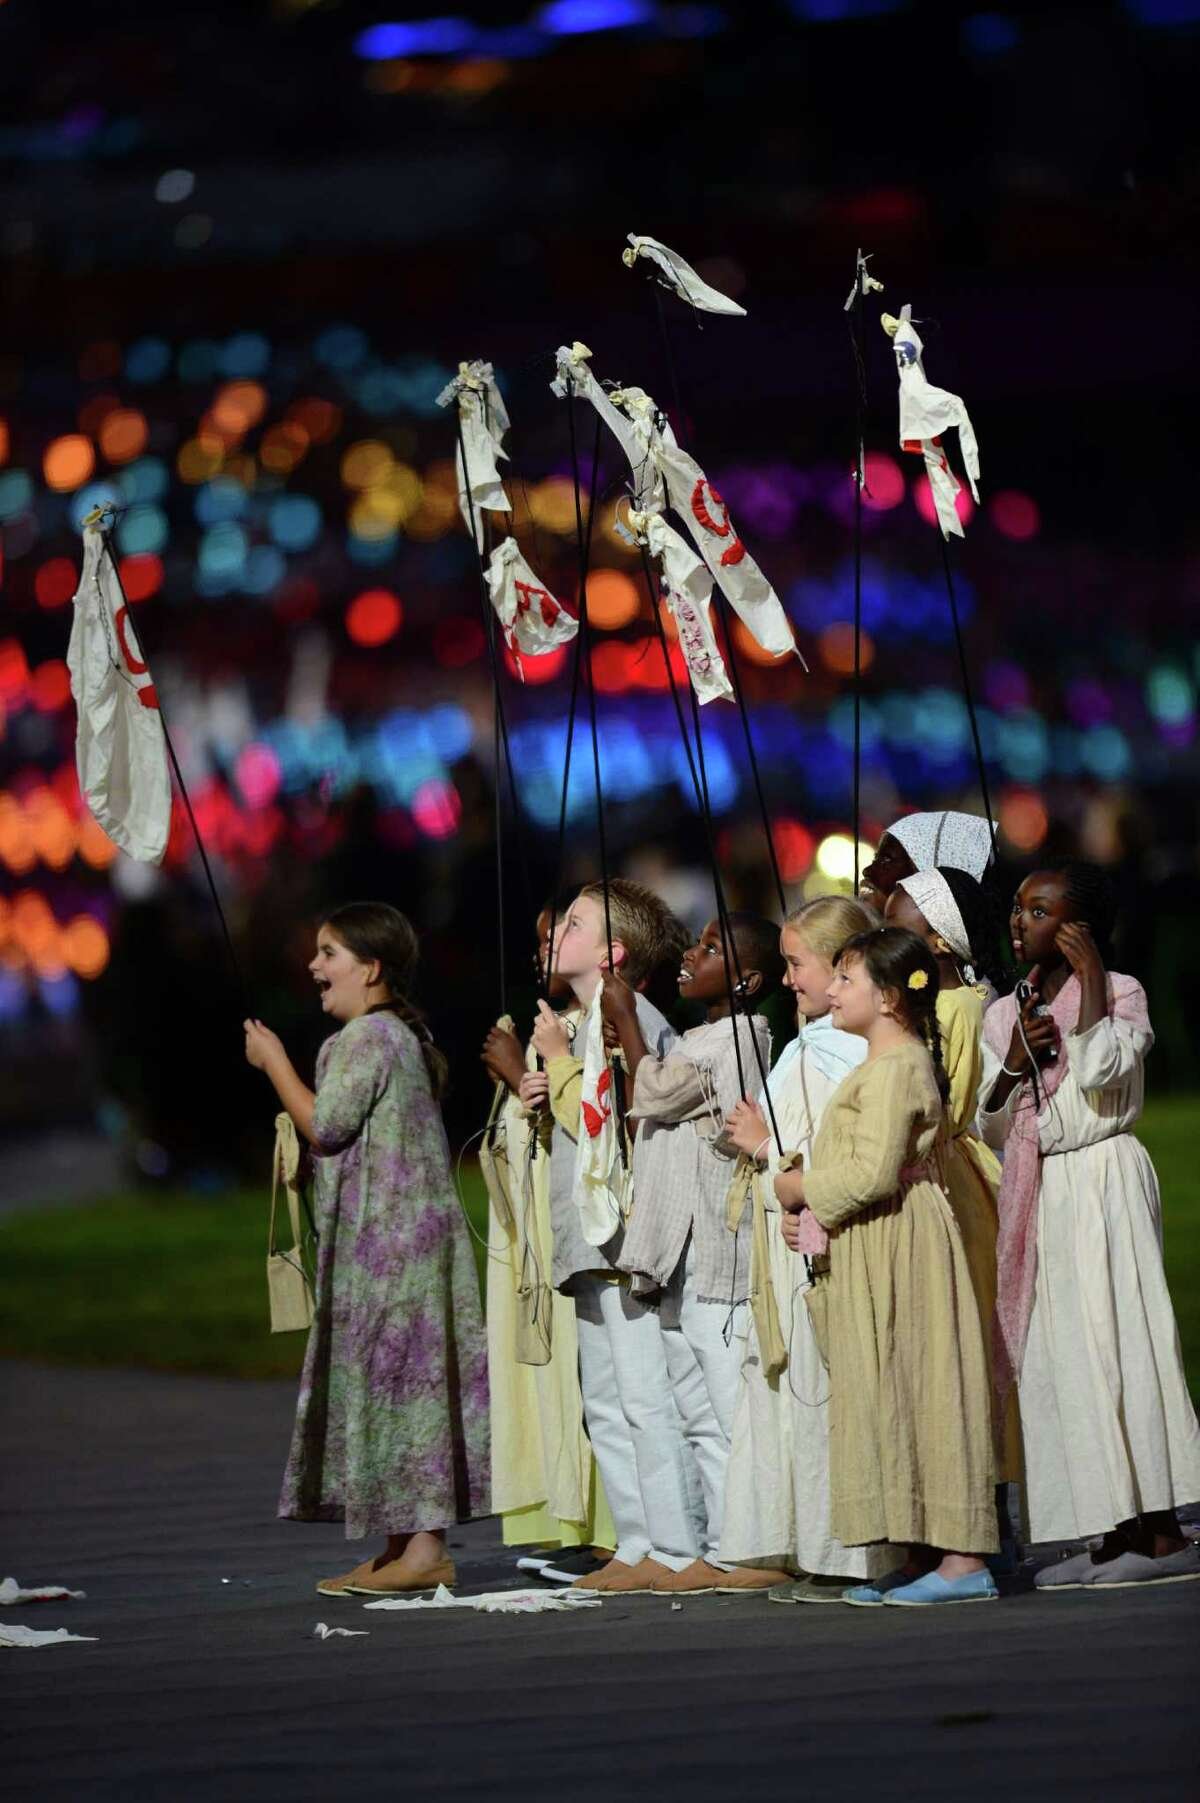 Children perform during the opening ceremony of the London 2012 Olympic Games on July 27, 2012 at the Olympic stadium in London.